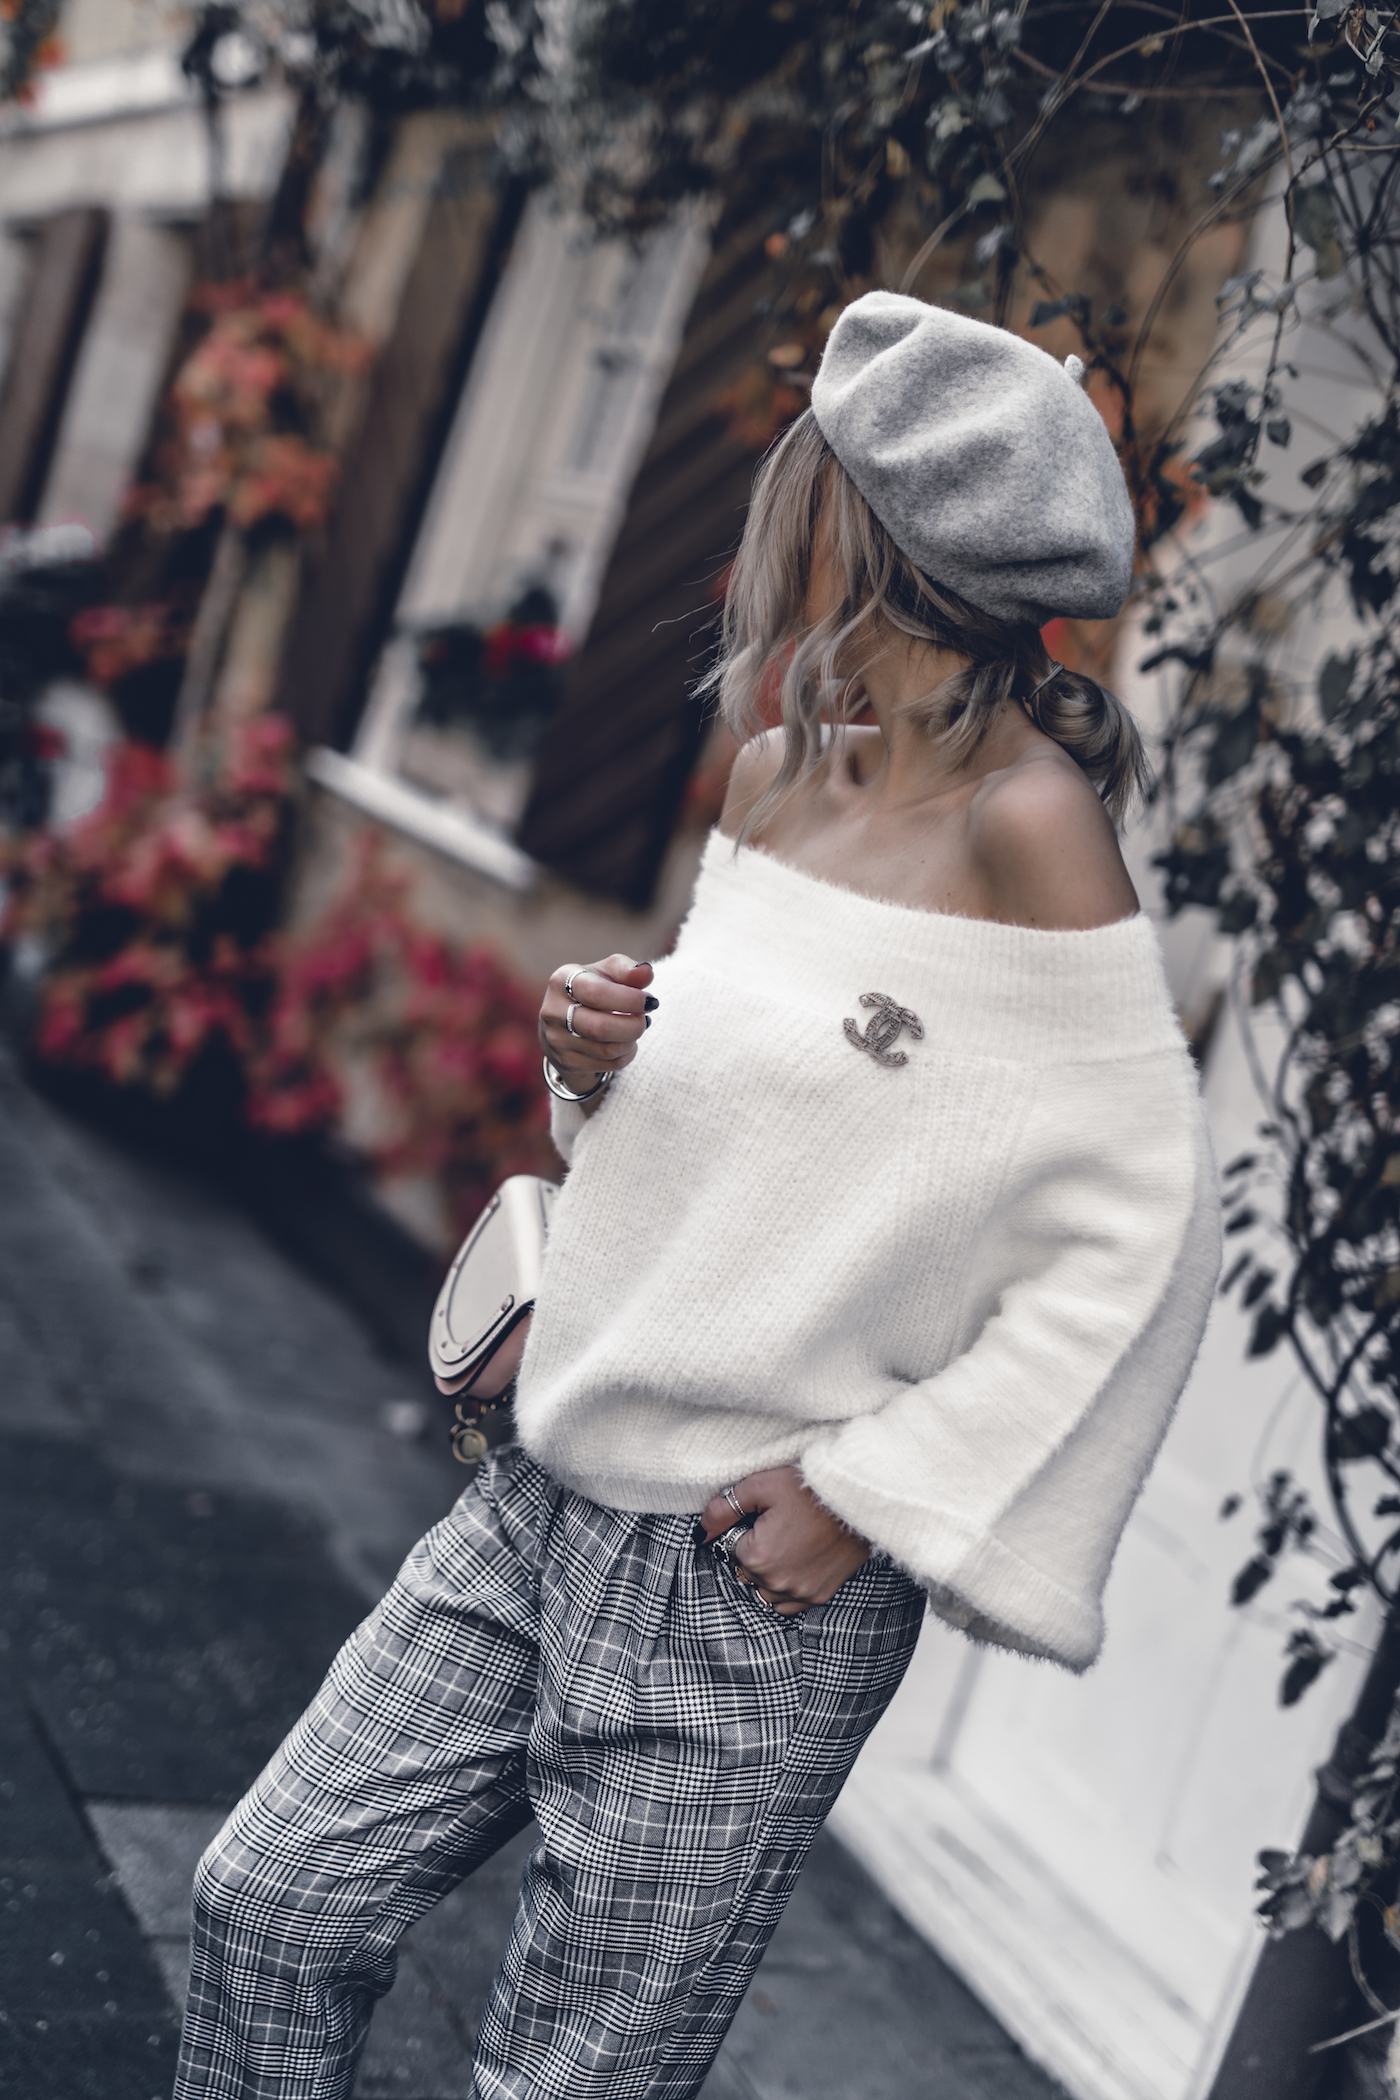 Fall Outfit 2017 Women Cute Preppy Edgy Classy Sweaters Parisian Street Styles, OffShoulder Sweater, Checked Pants | seen on WantGetRepeat.com